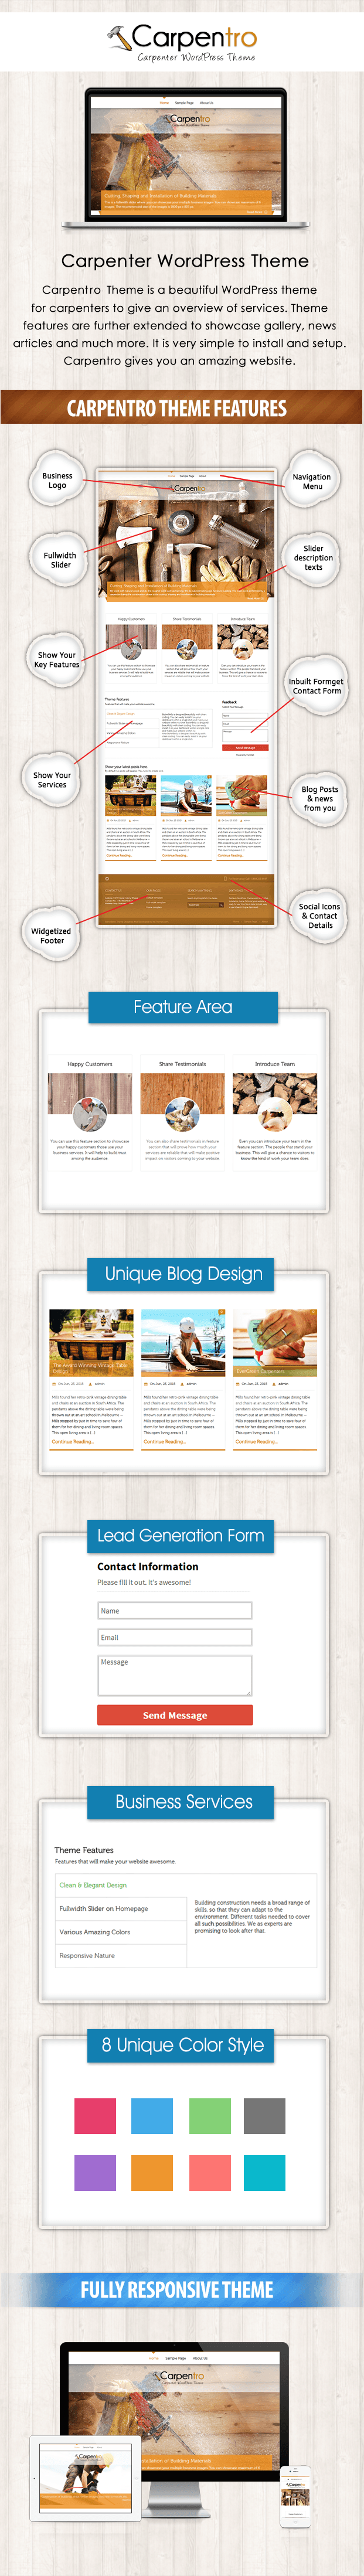 wordpress theme for carpenters